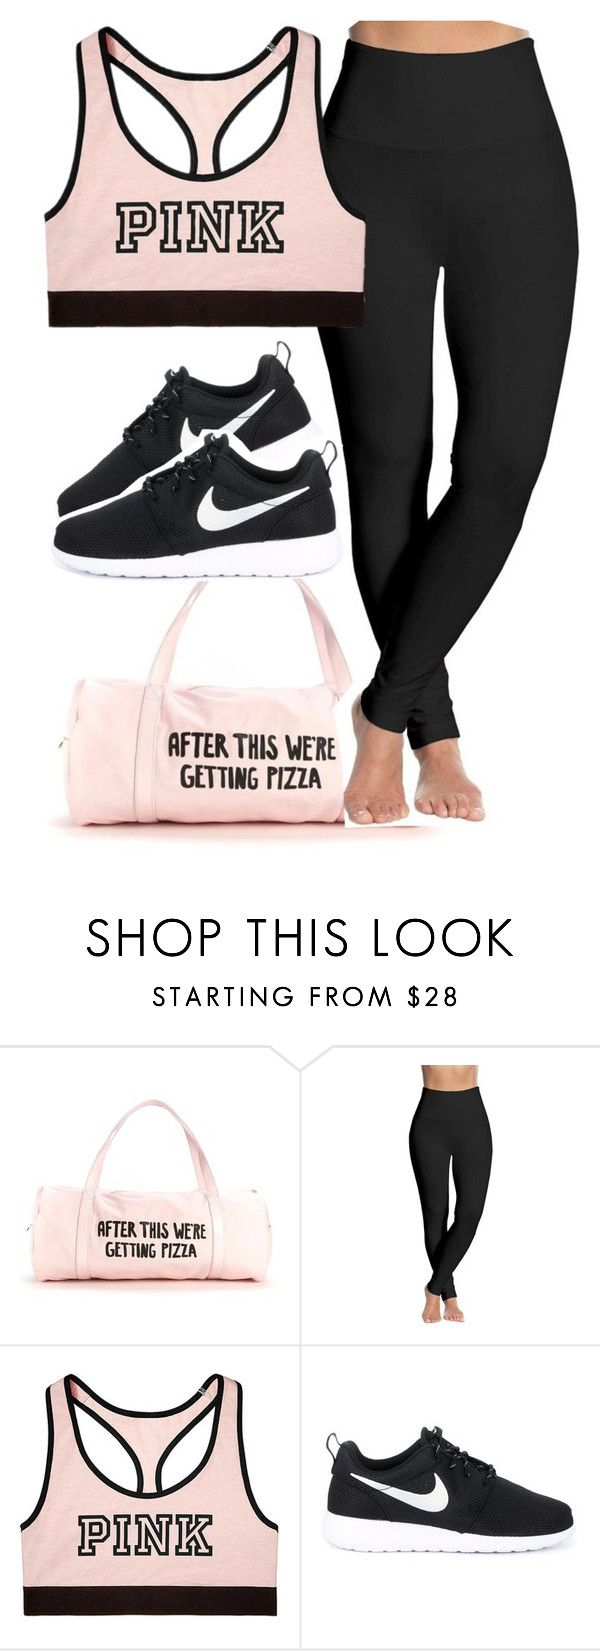 """gym outfit."" by xxsaraxtaraxx ❤ liked on Polyvore featuring Lyssé Leggings, Victoria's Secret and NIKE"